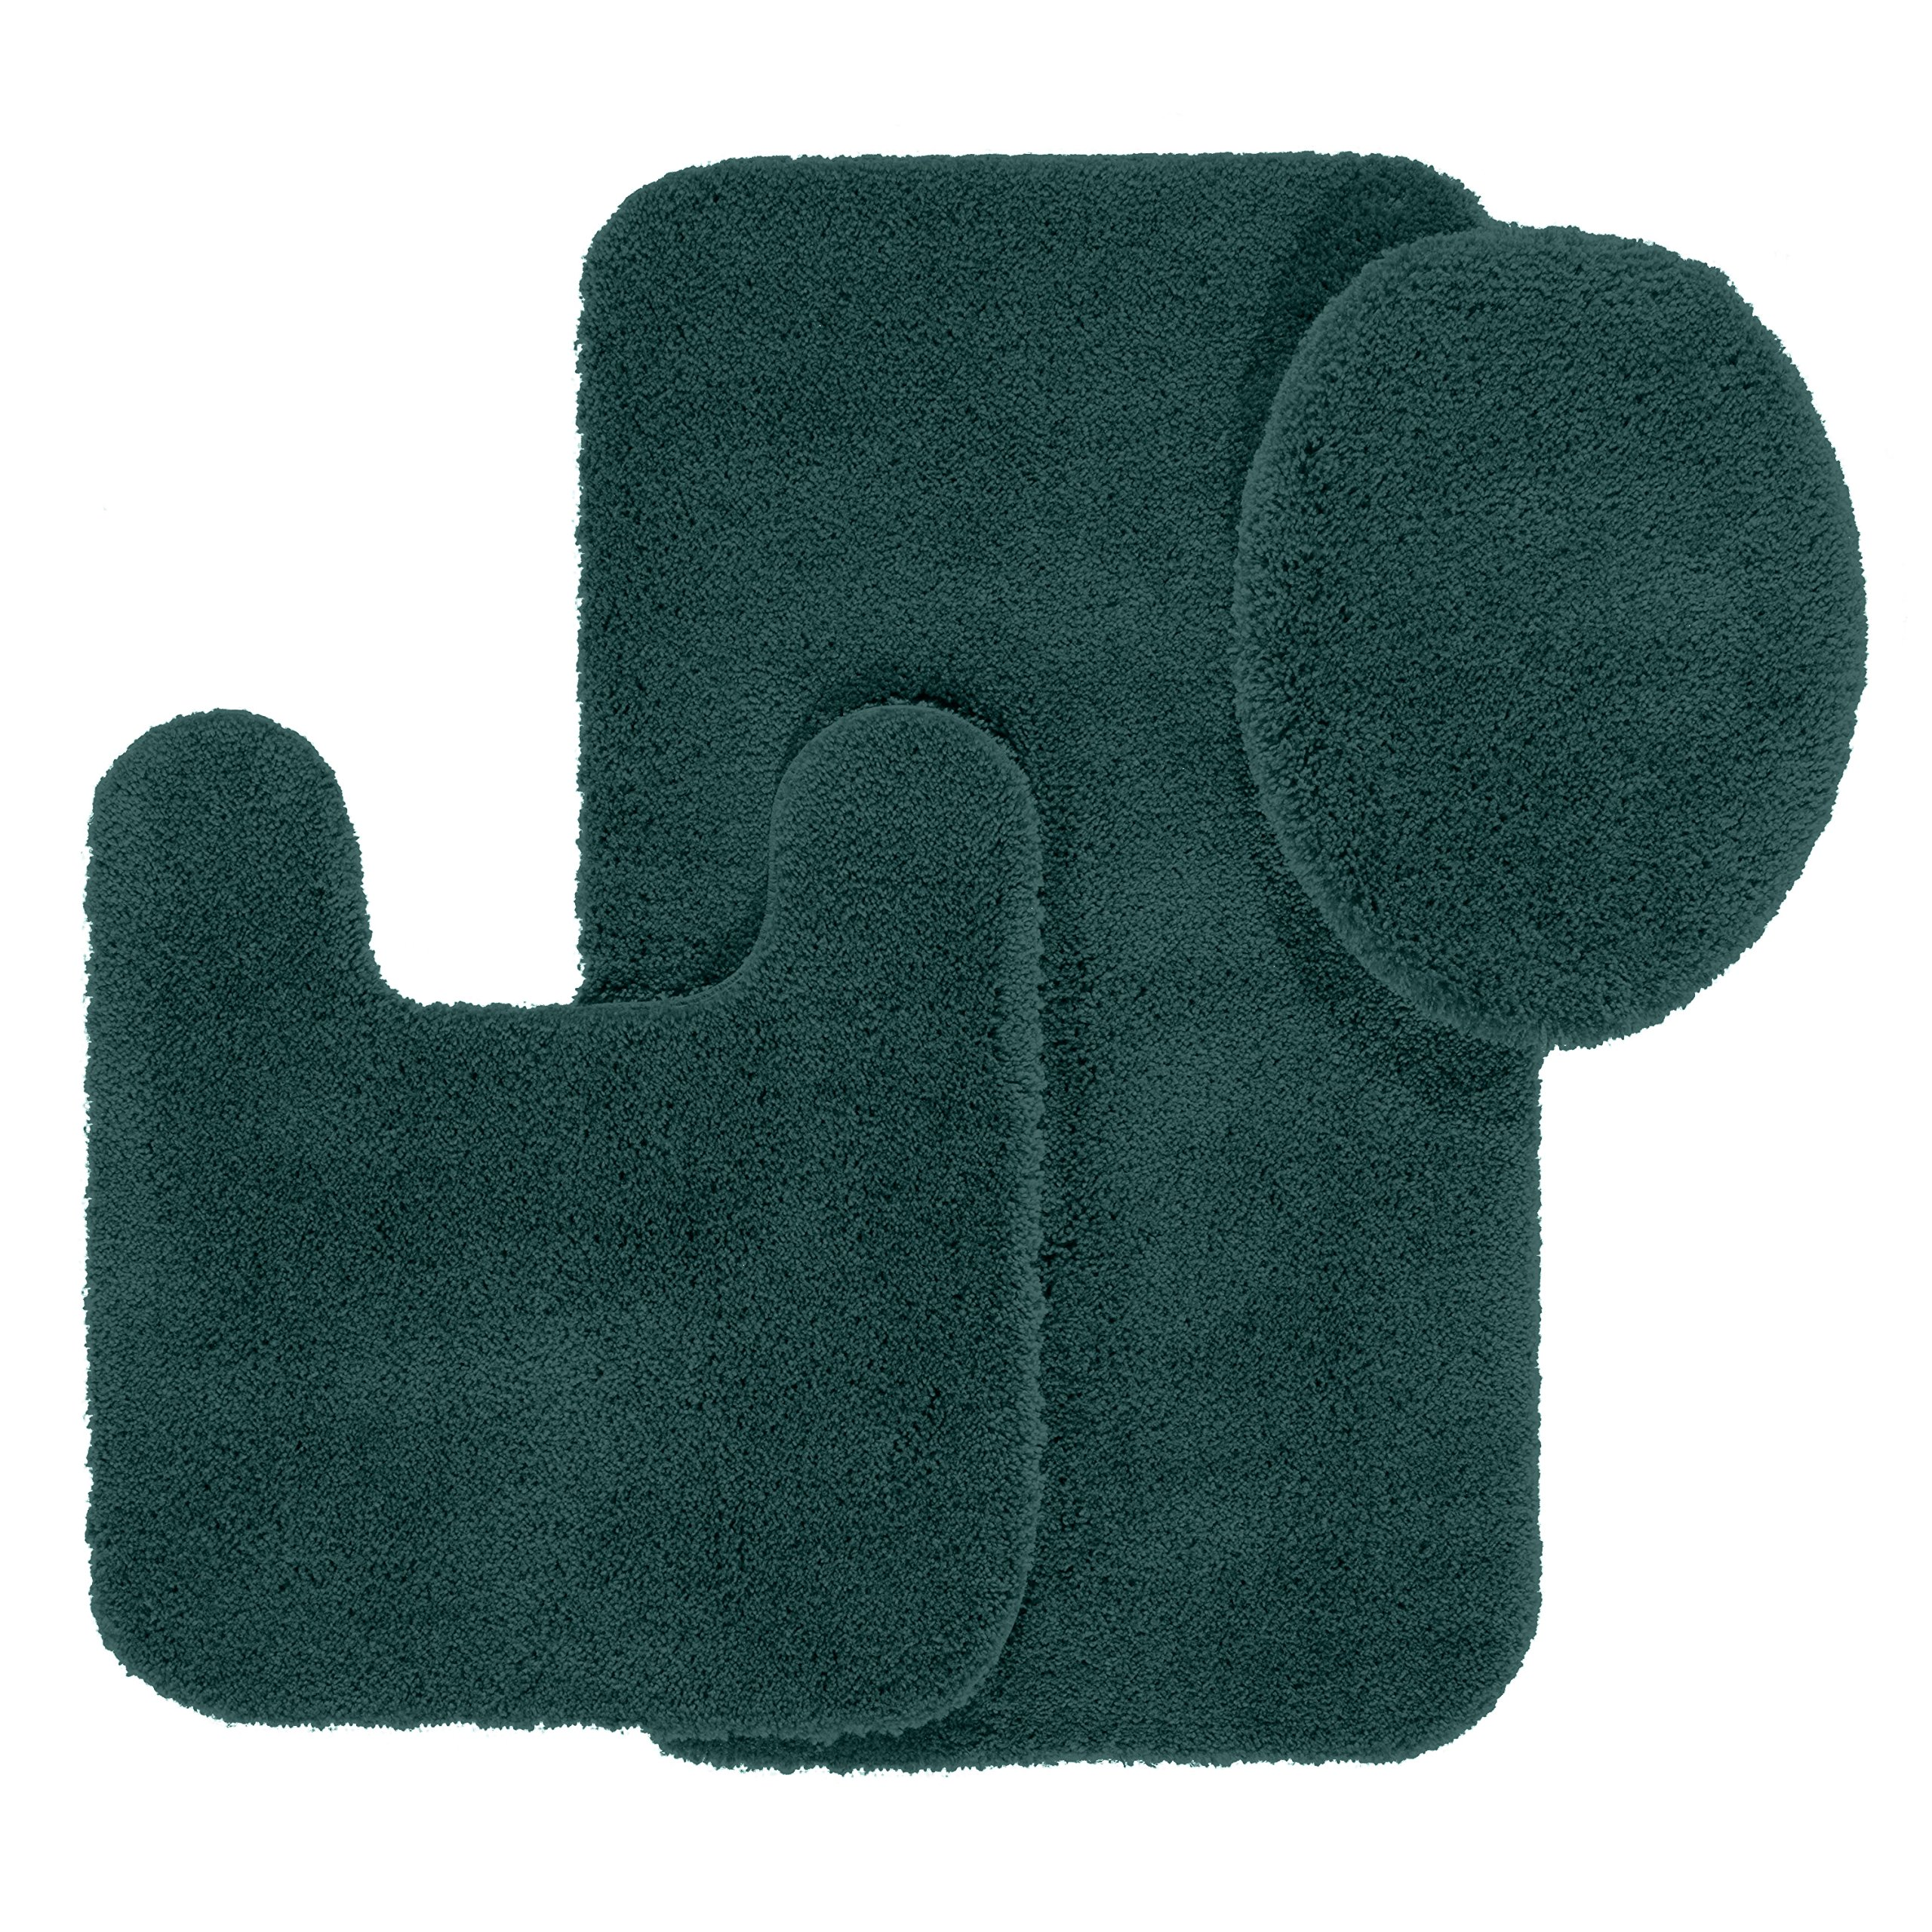 Cheap Bathroom Rugs Sets Find Bathroom Rugs Sets Deals On Line At